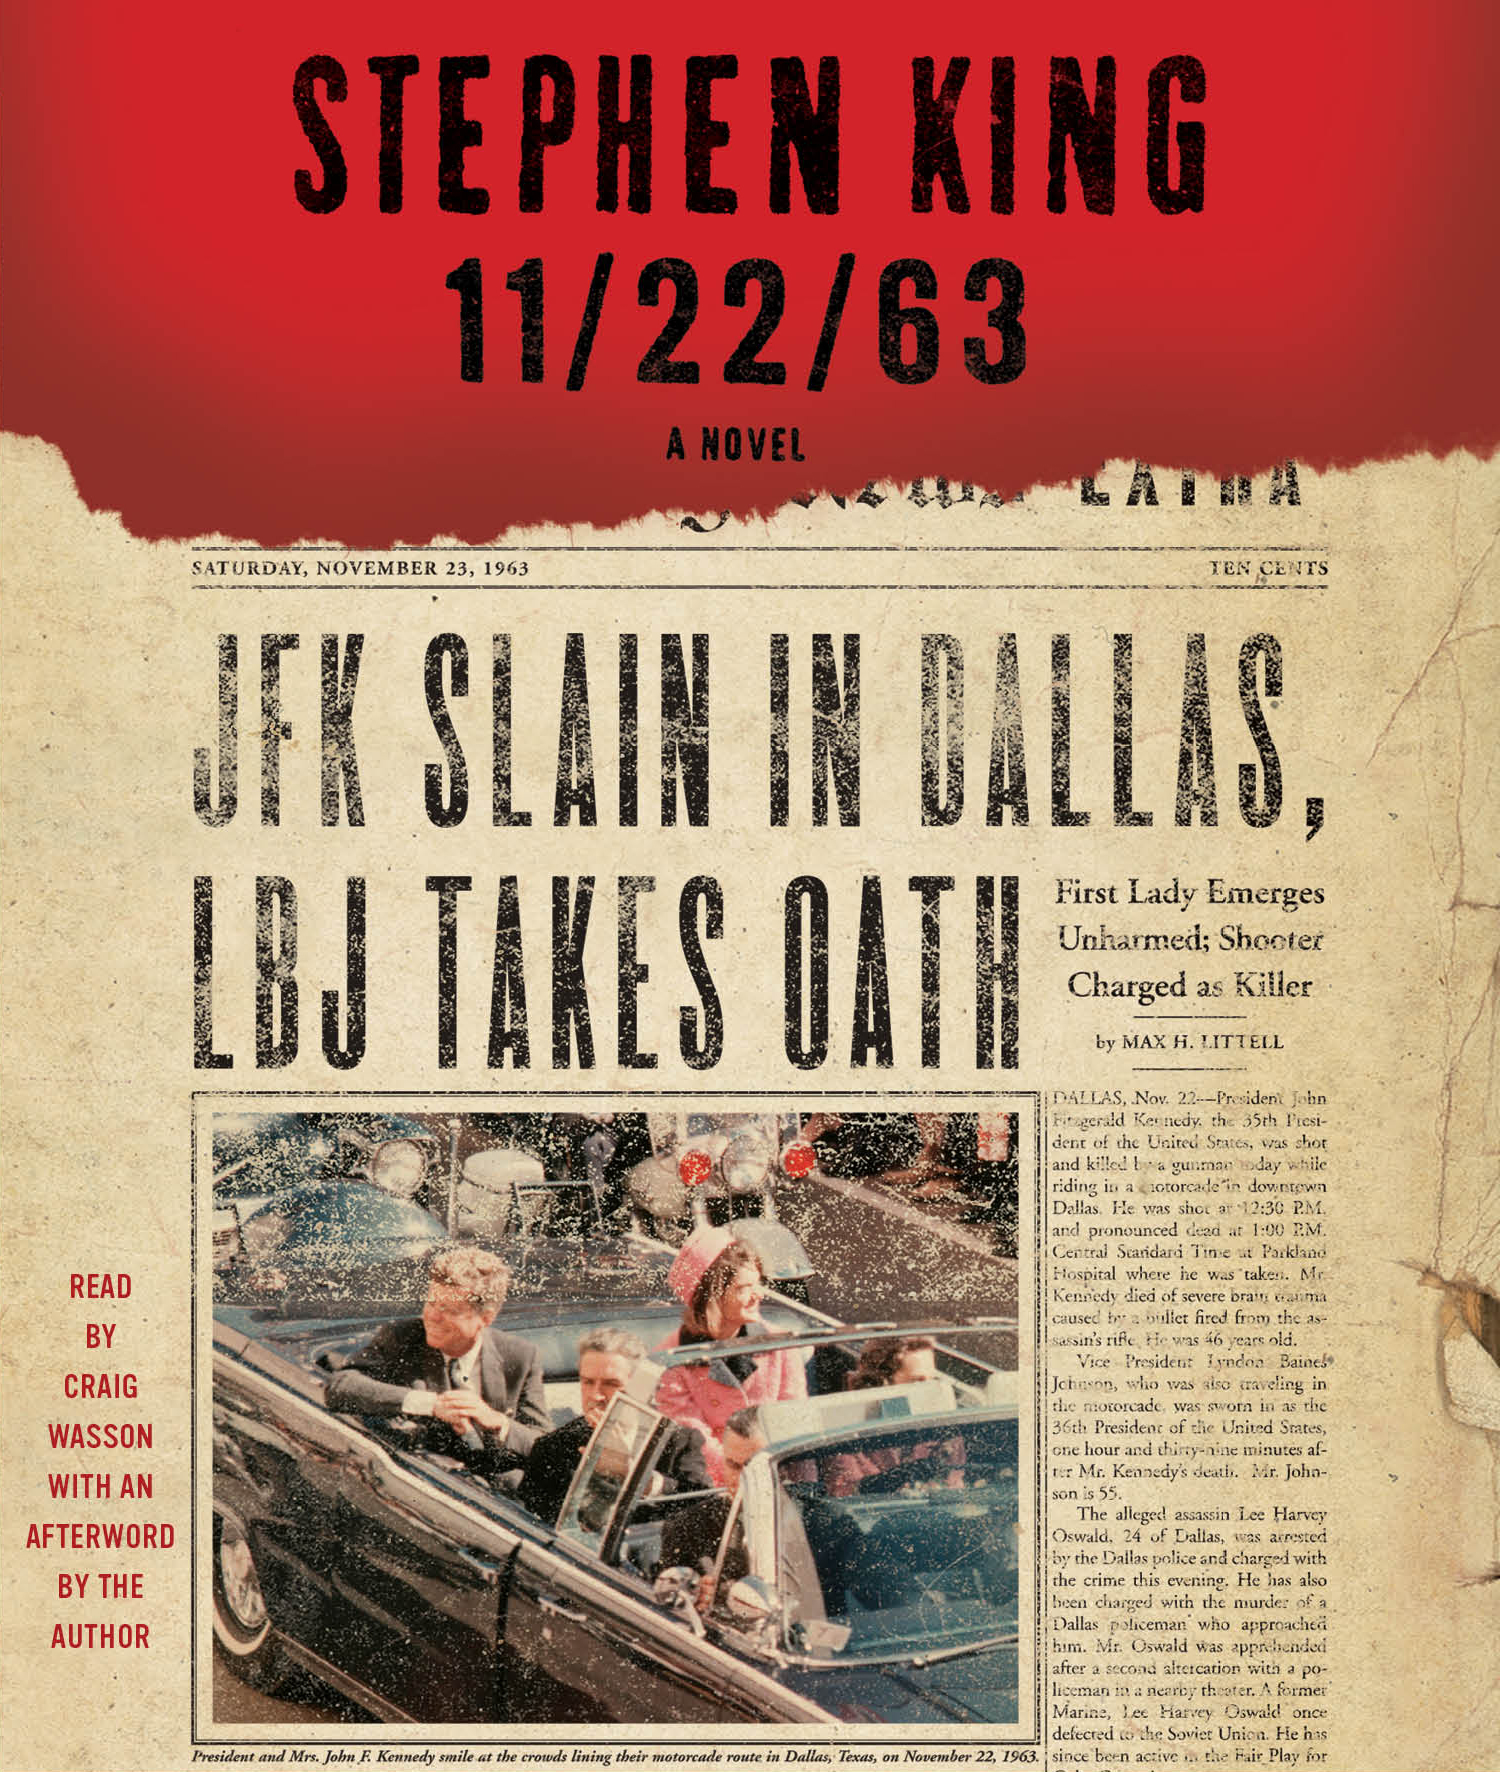 new york times book review stephen king 11 22 63